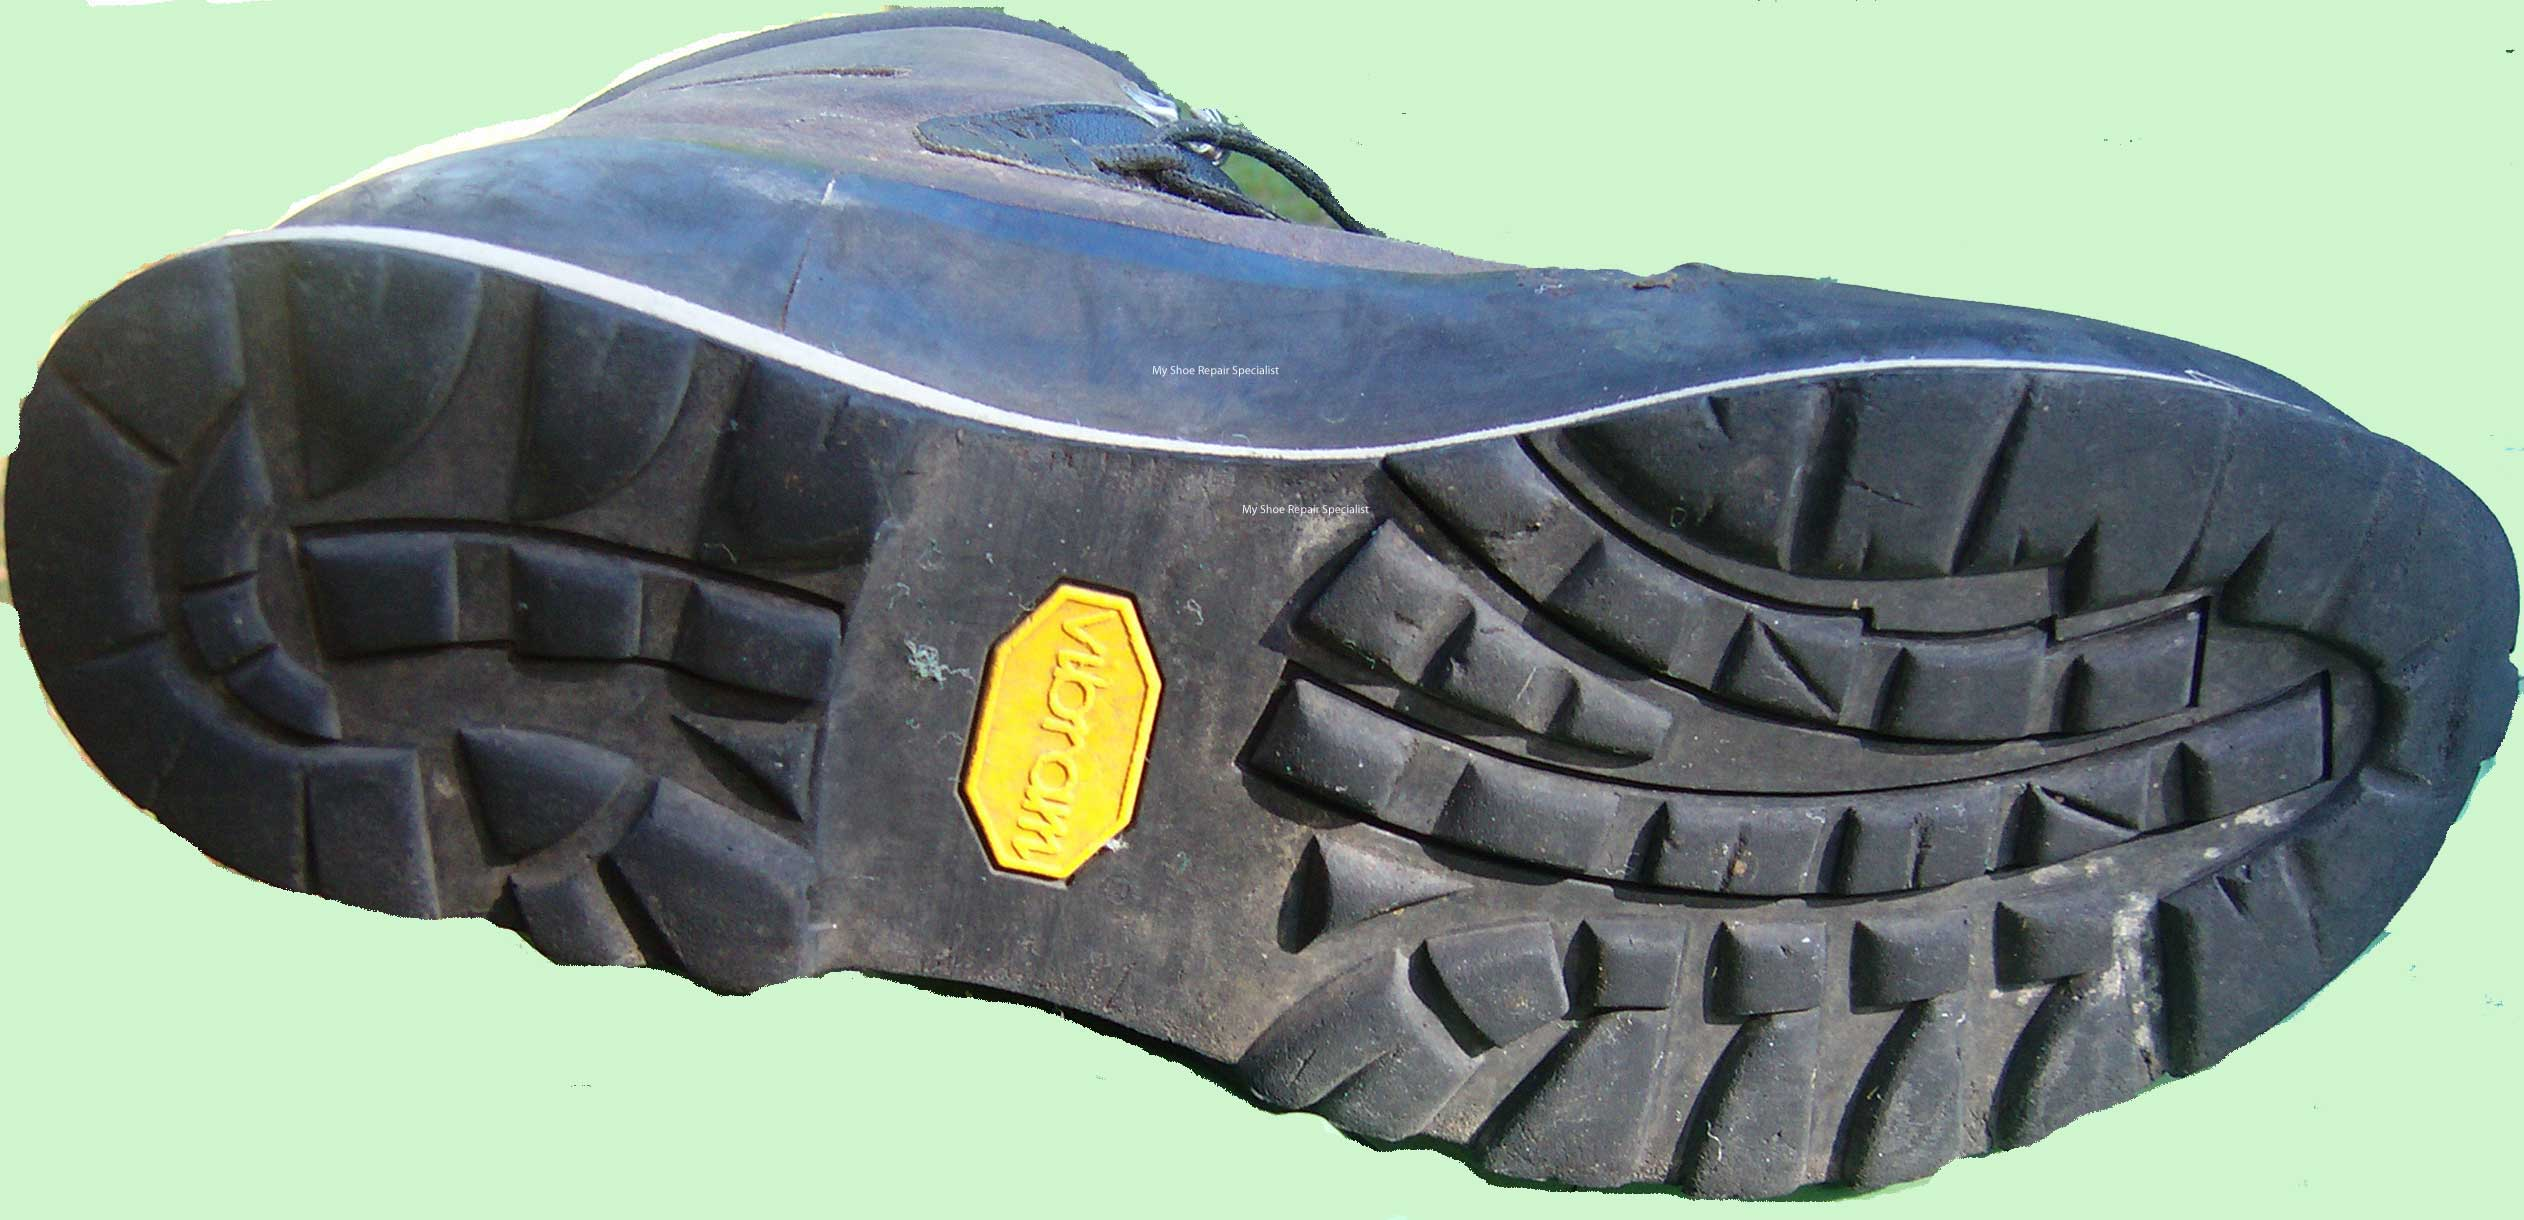 hiking boot repair Queensland Victoria NSW Scarpa boot repair scarpa hiking boot repair asolo hiking boot repair Scarpa Sole Repair Asolo Sole Repair